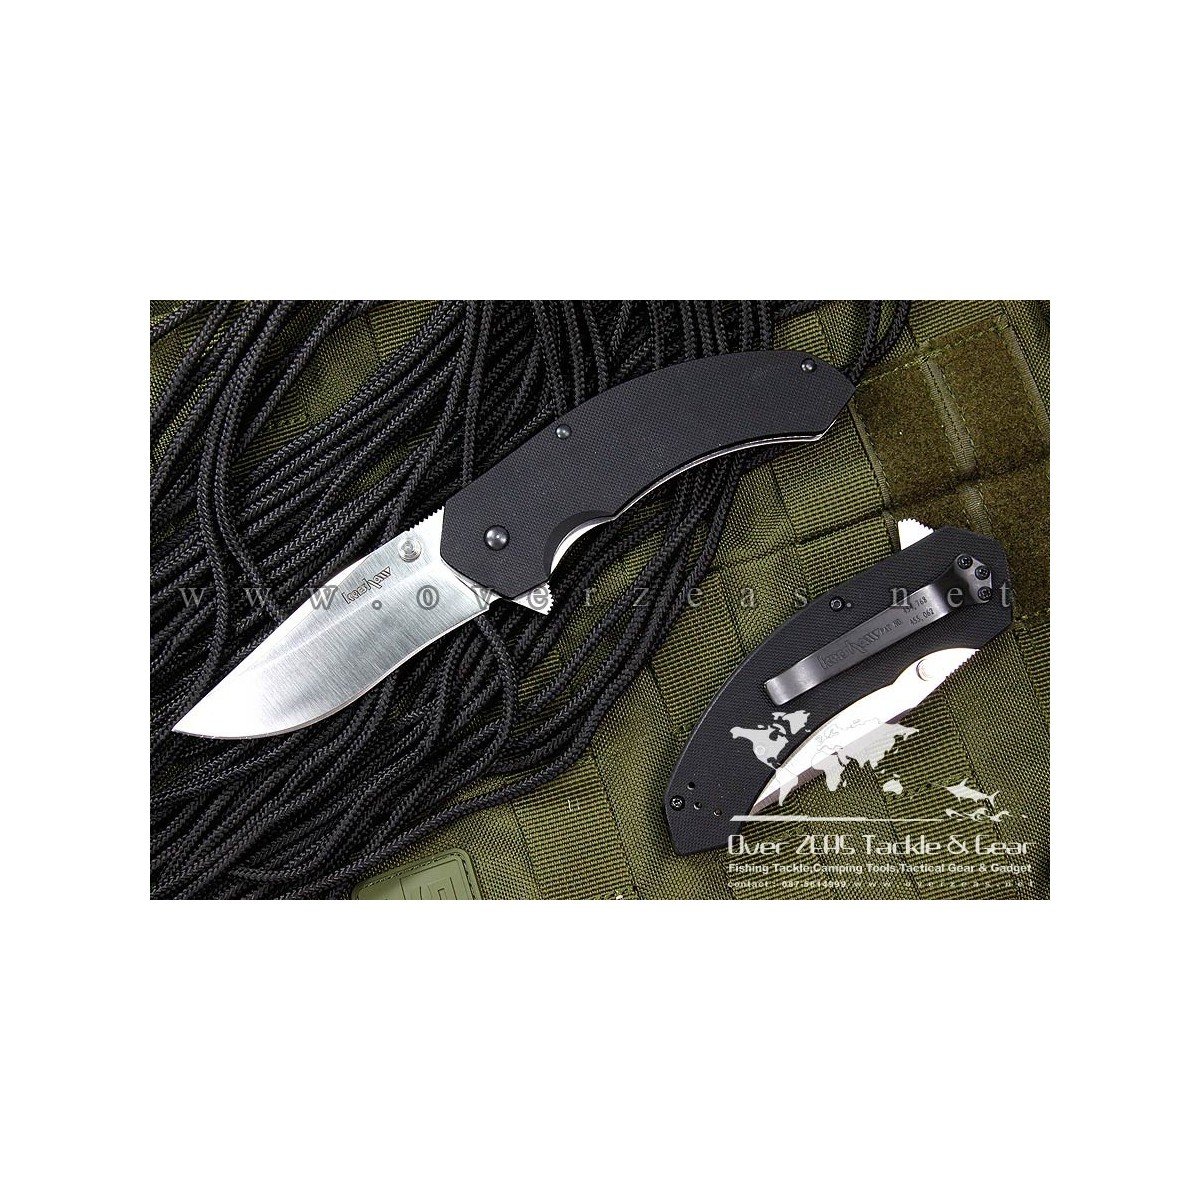 "Kershaw Knives Lahar Folder with 3-1/2"" VG-10 Blade and G-10 Handle Textured"